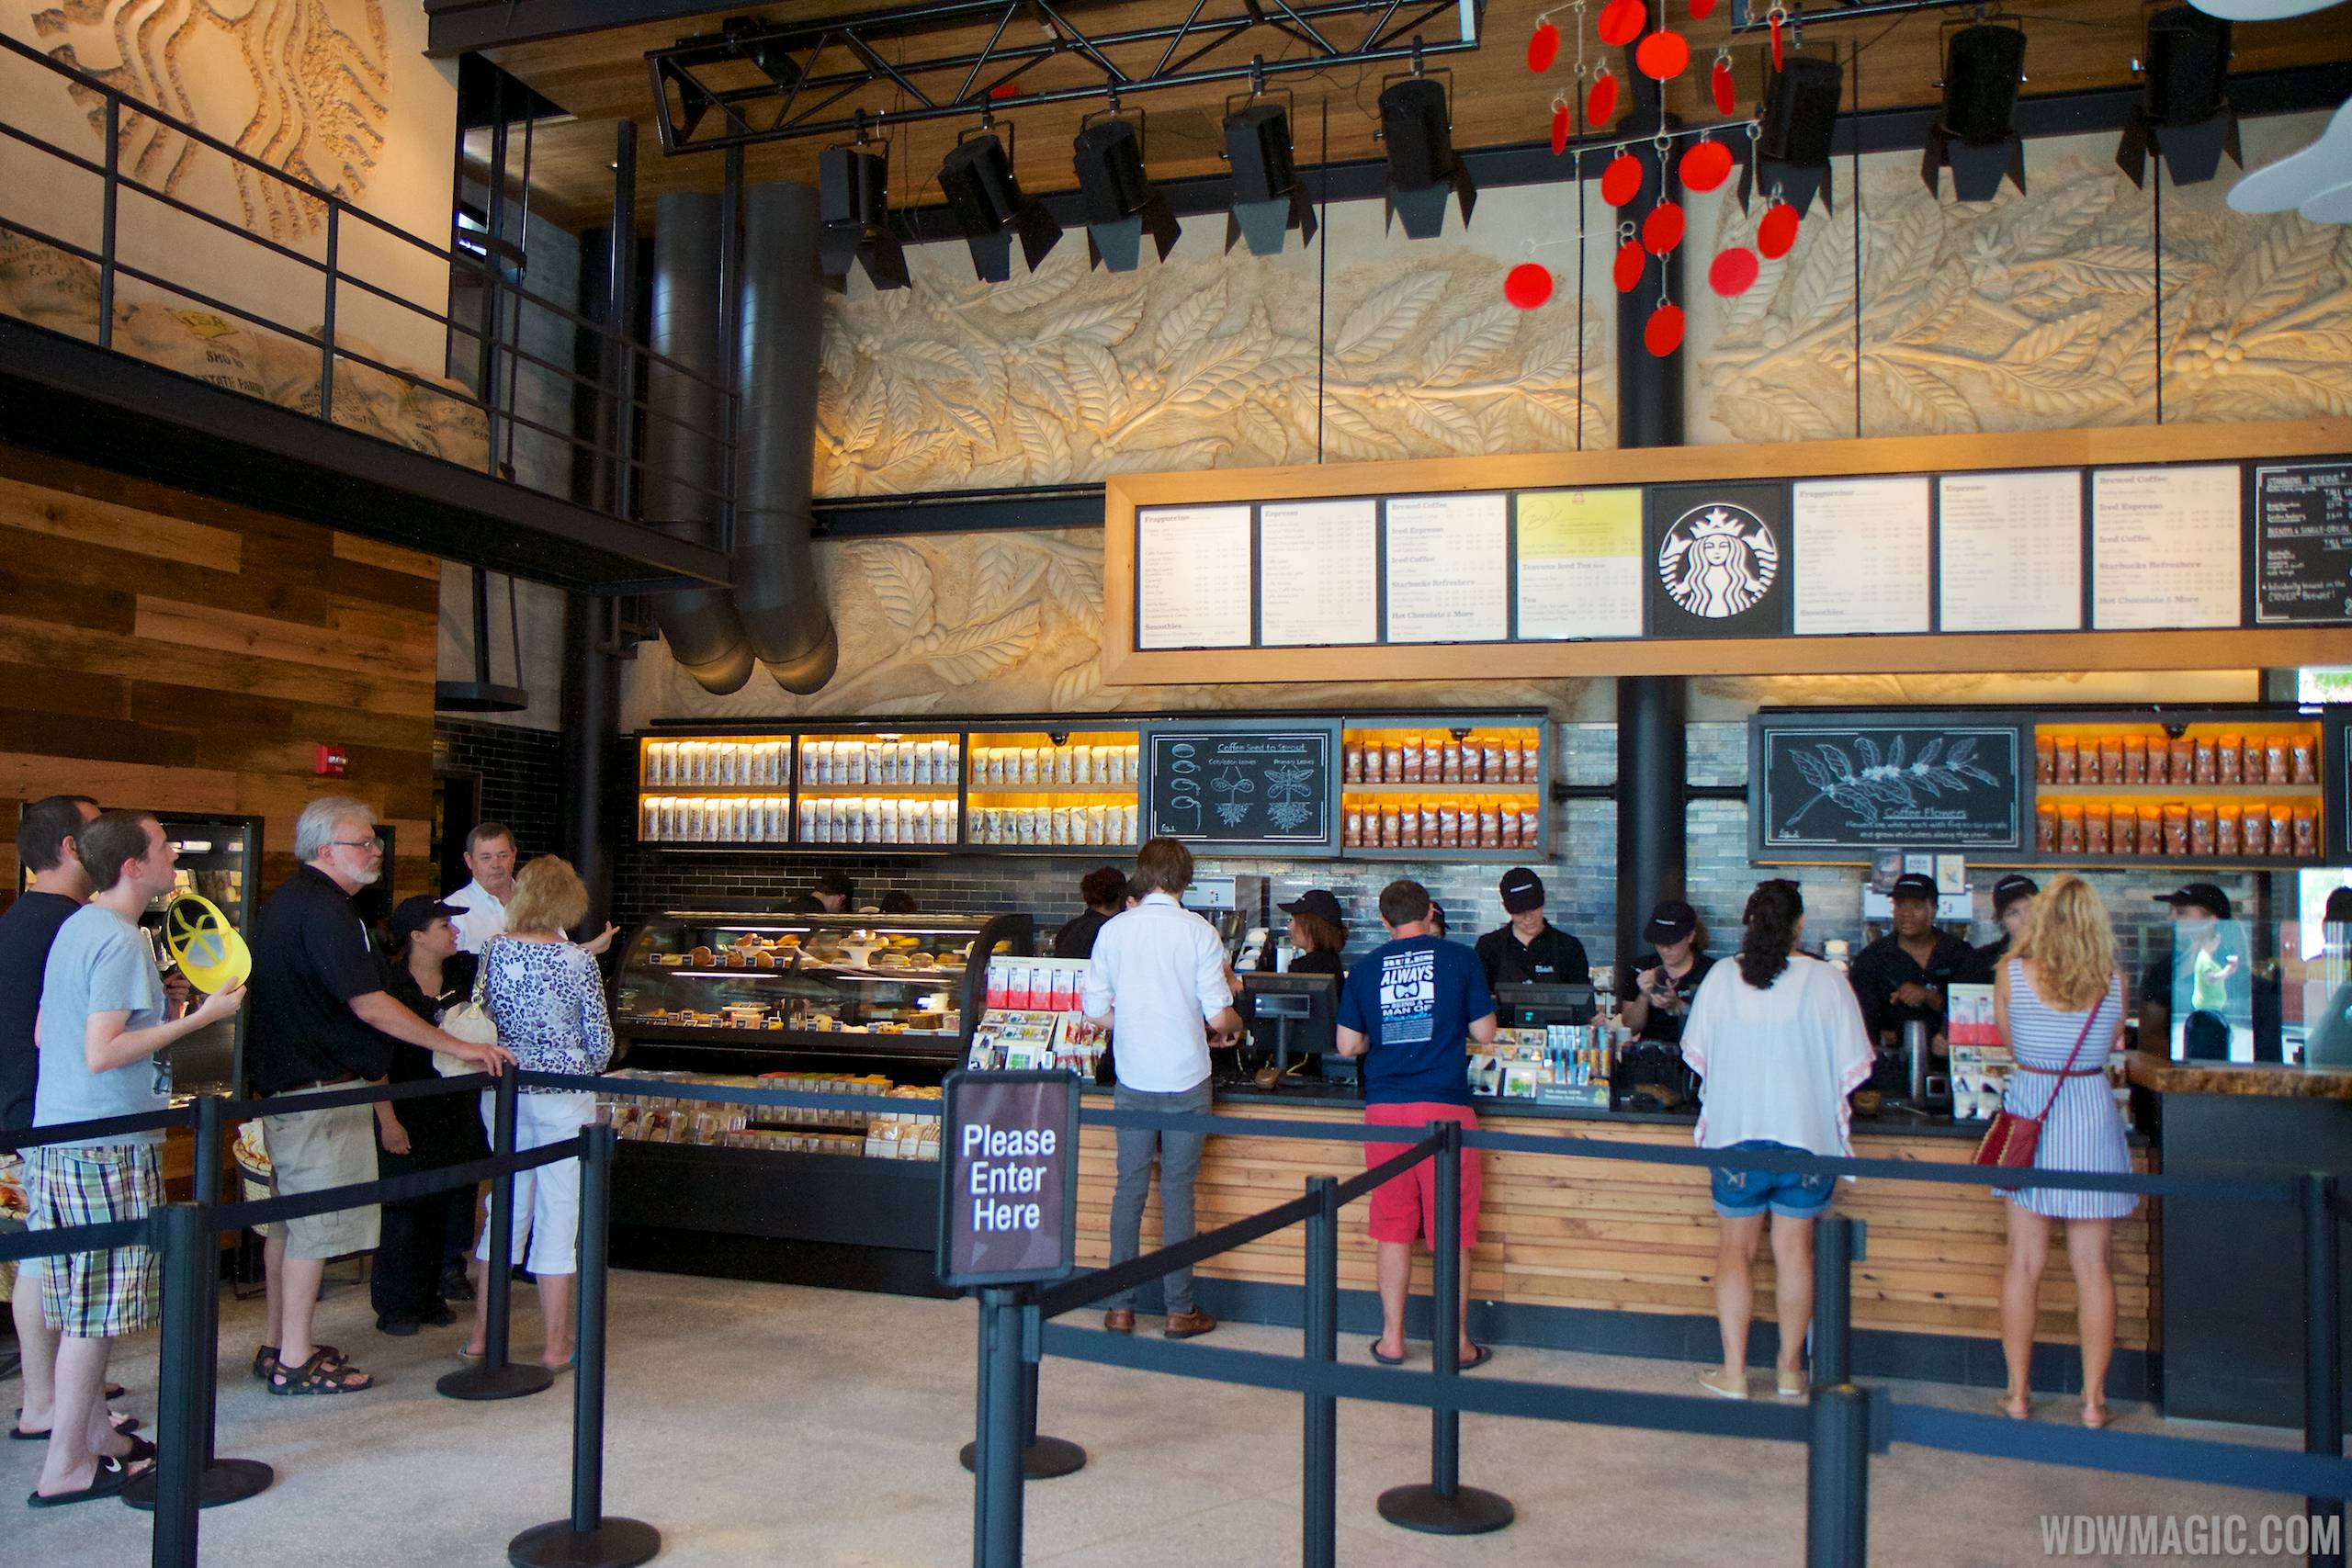 Inside the Starbucks West Side